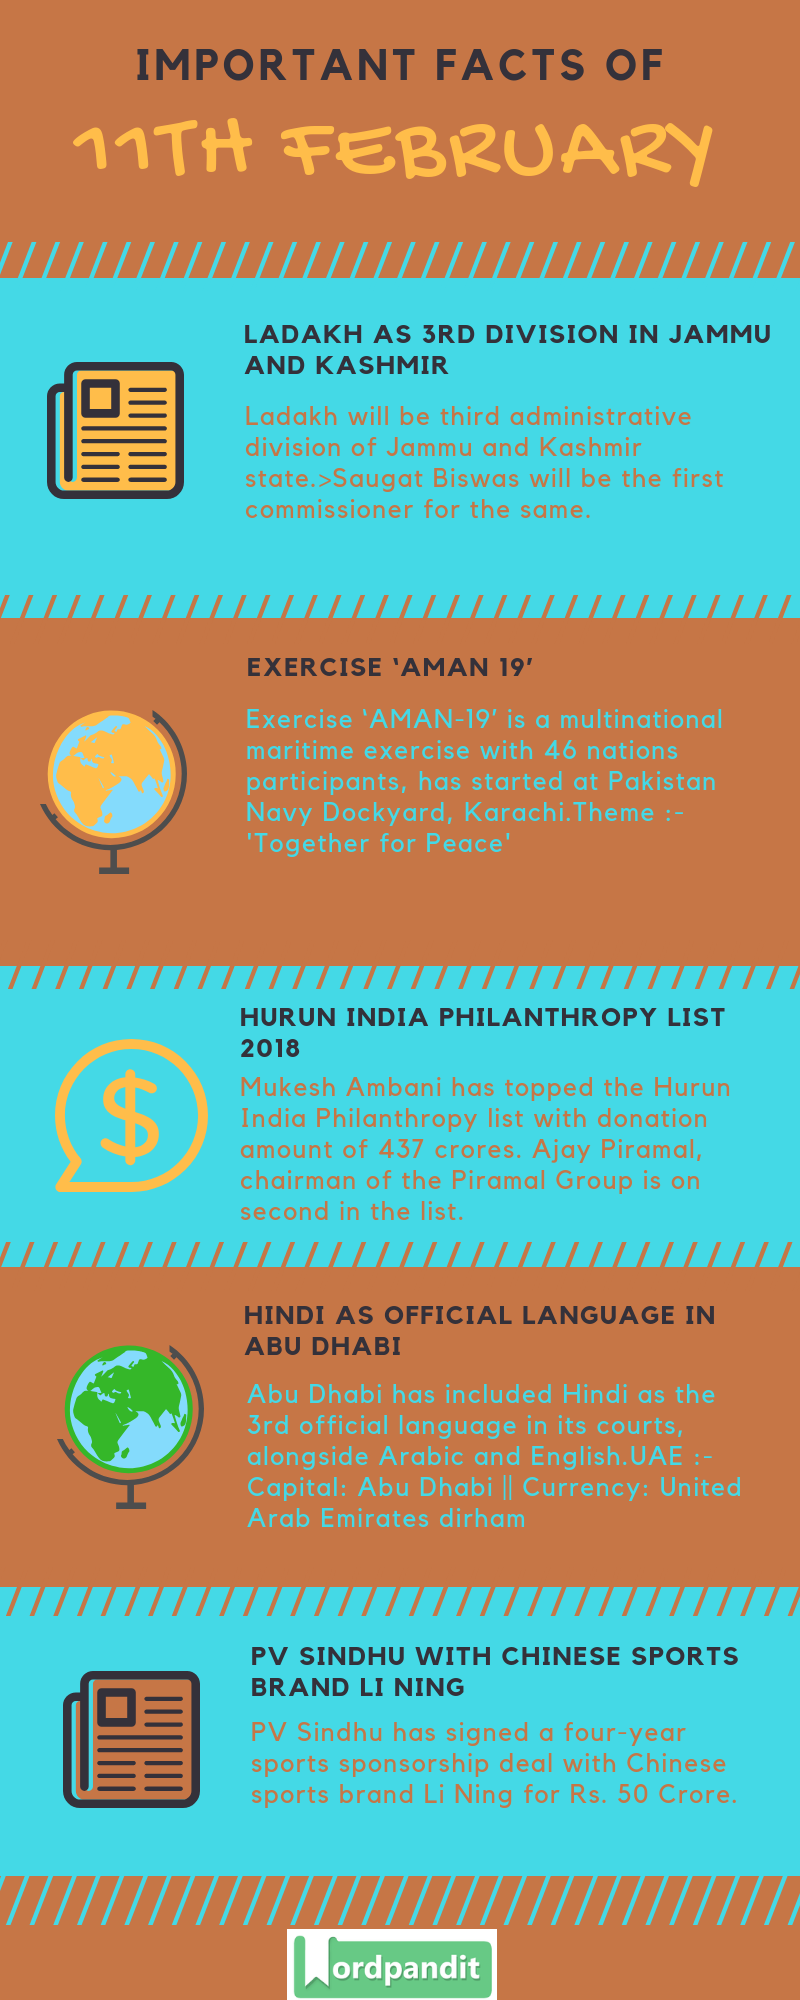 Daily Current Affairs 11 February 2019 Current Affairs Quiz 11 February 2019 Current Affairs Infographic